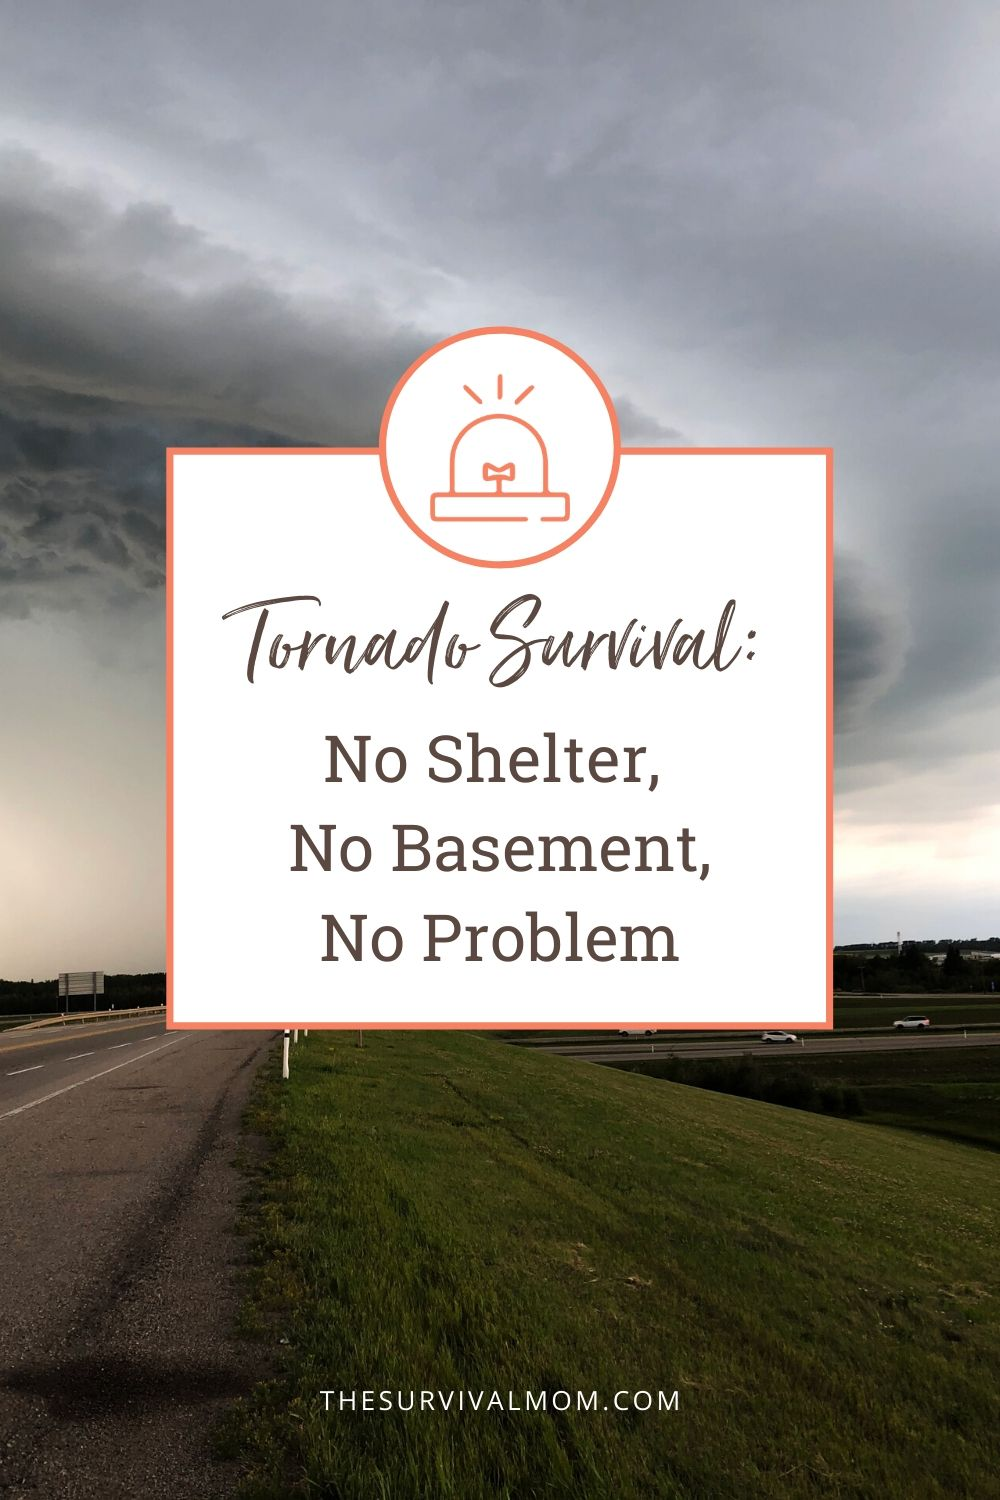 Tornado Survival No Shelter No Basement No Problem via The Survival Mom